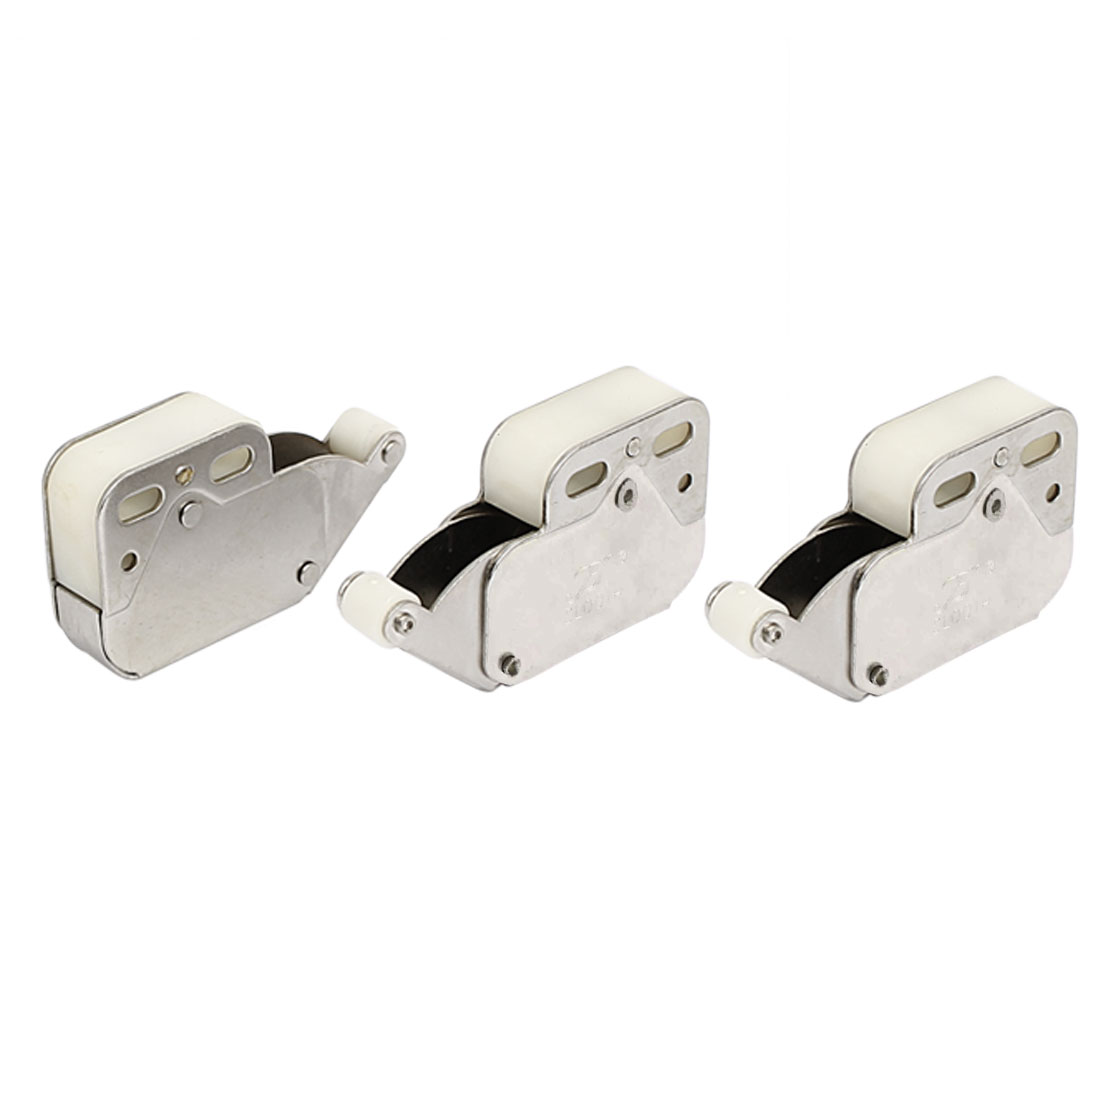 Push Open Touch Release Cupboard Door Catch 3Pcs